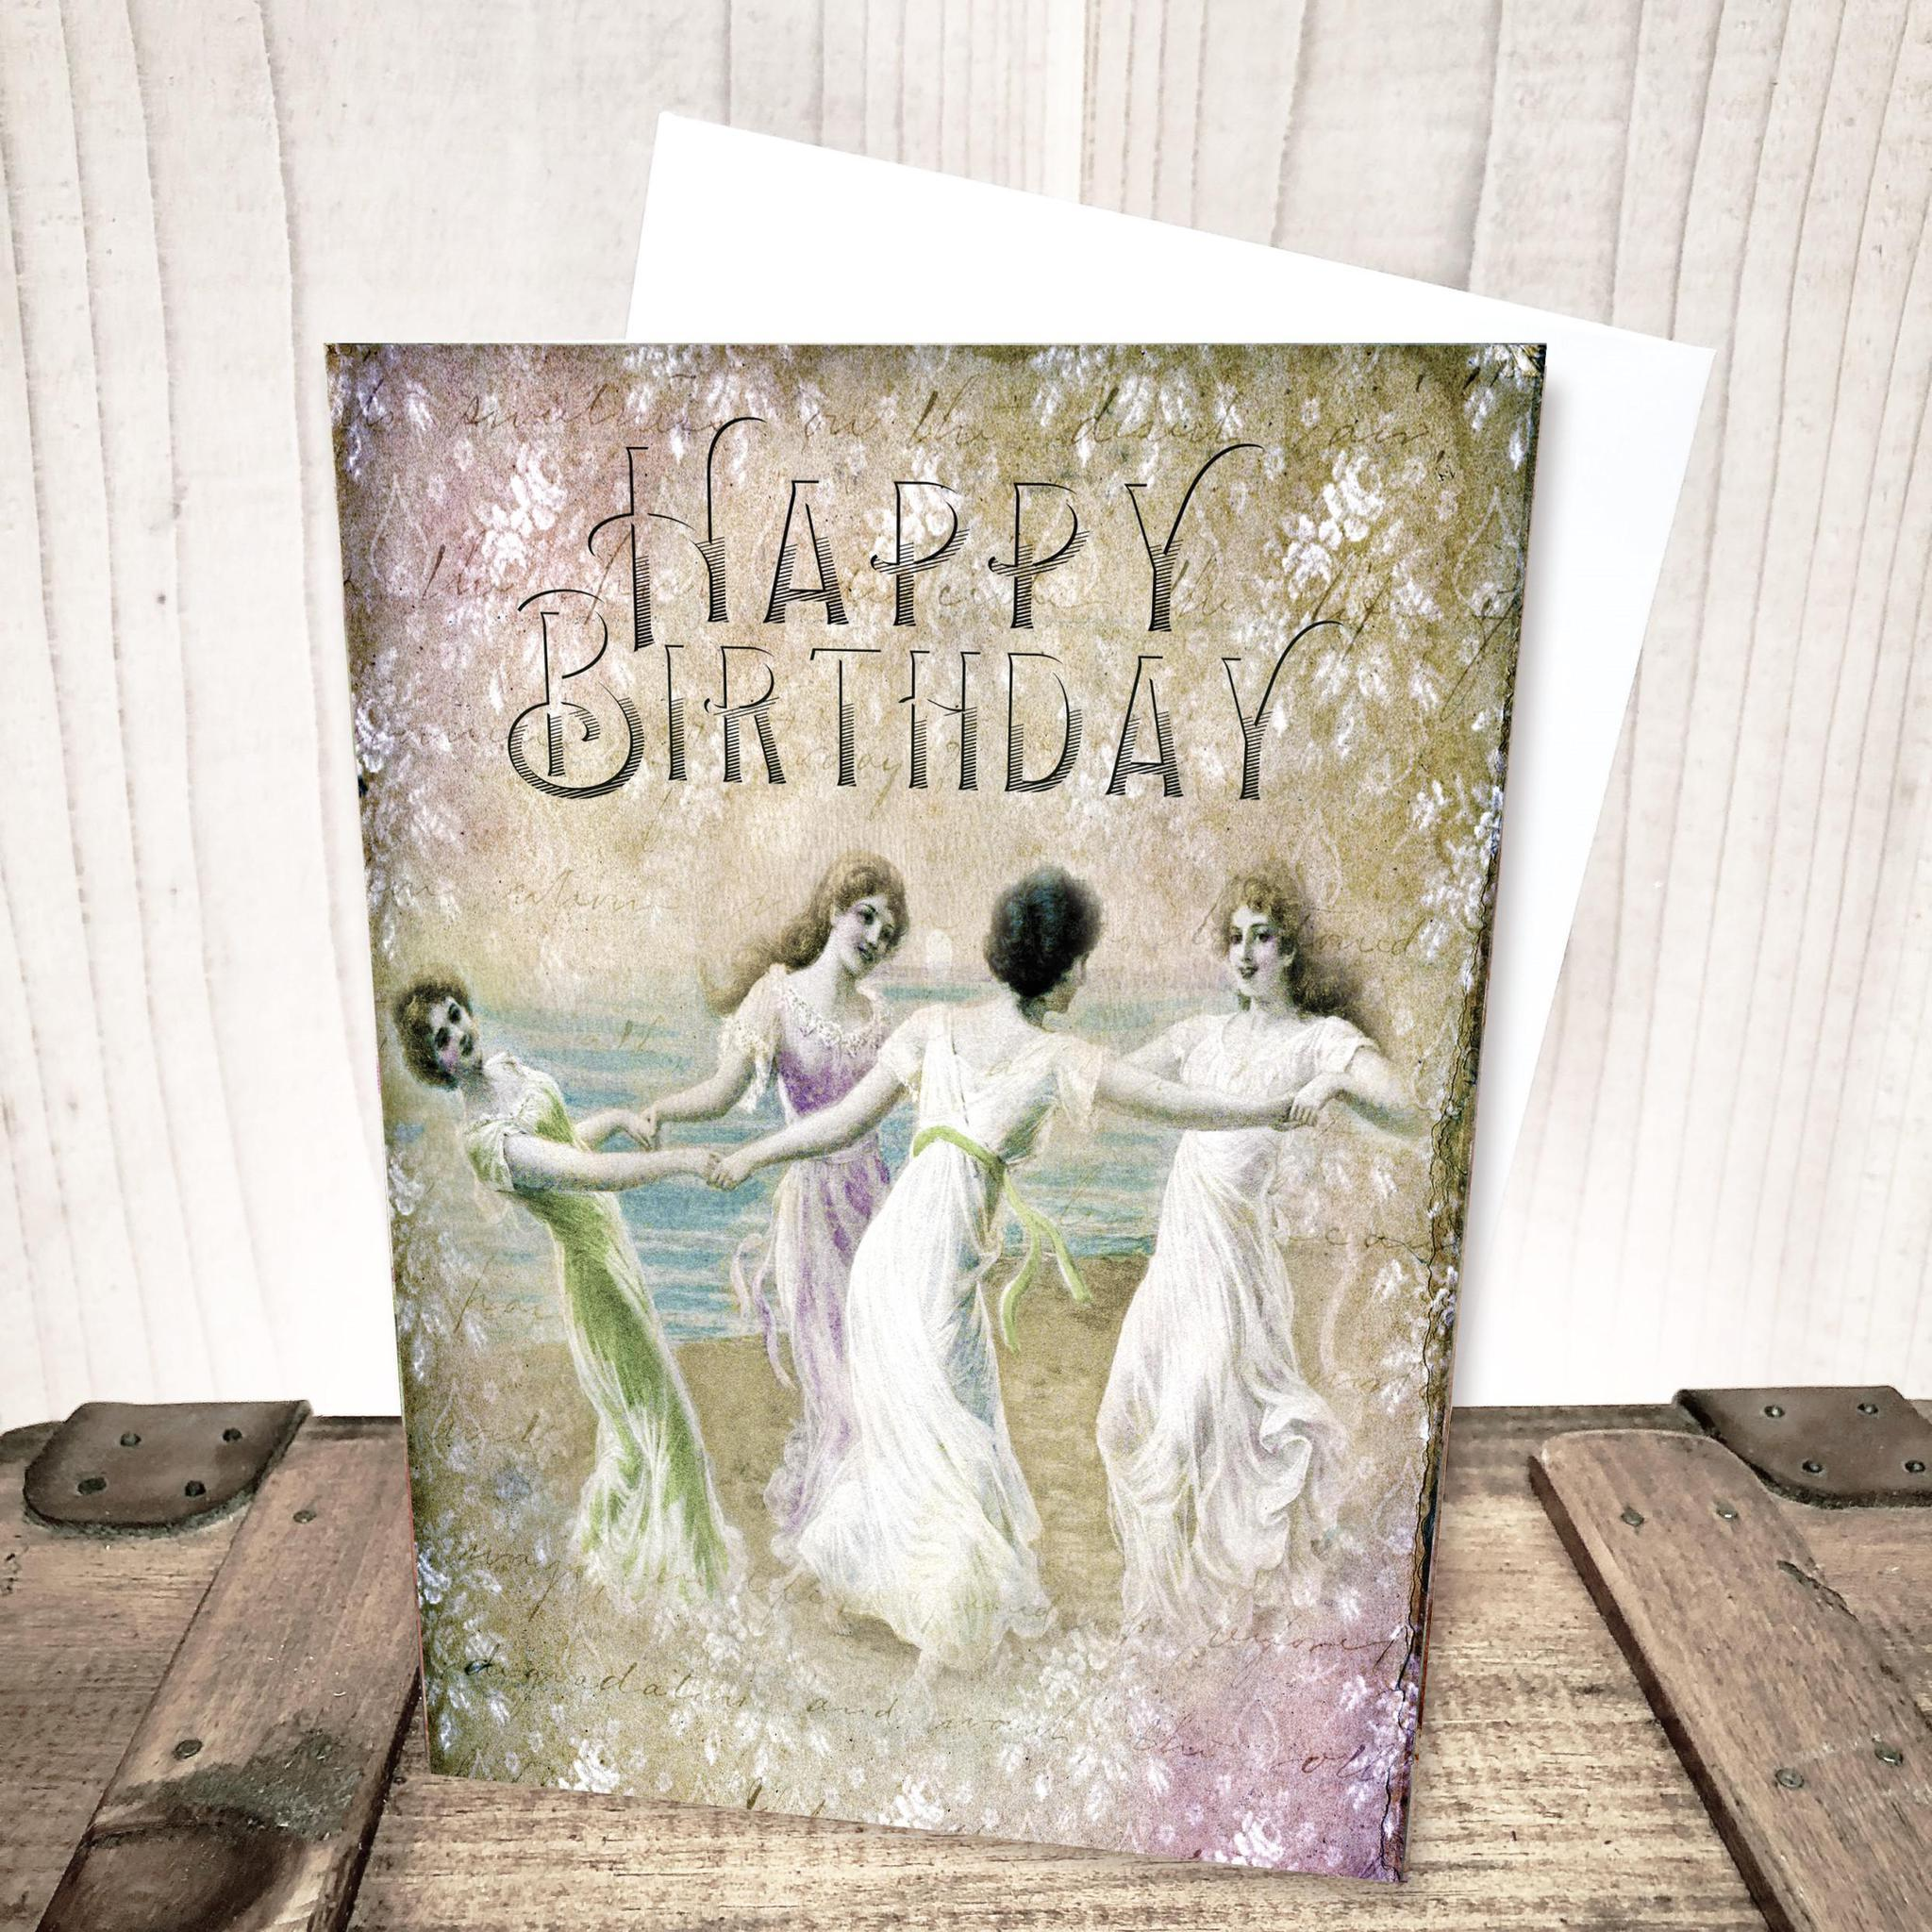 Beauties at the Beach Birthday Card by Yesterday's Best